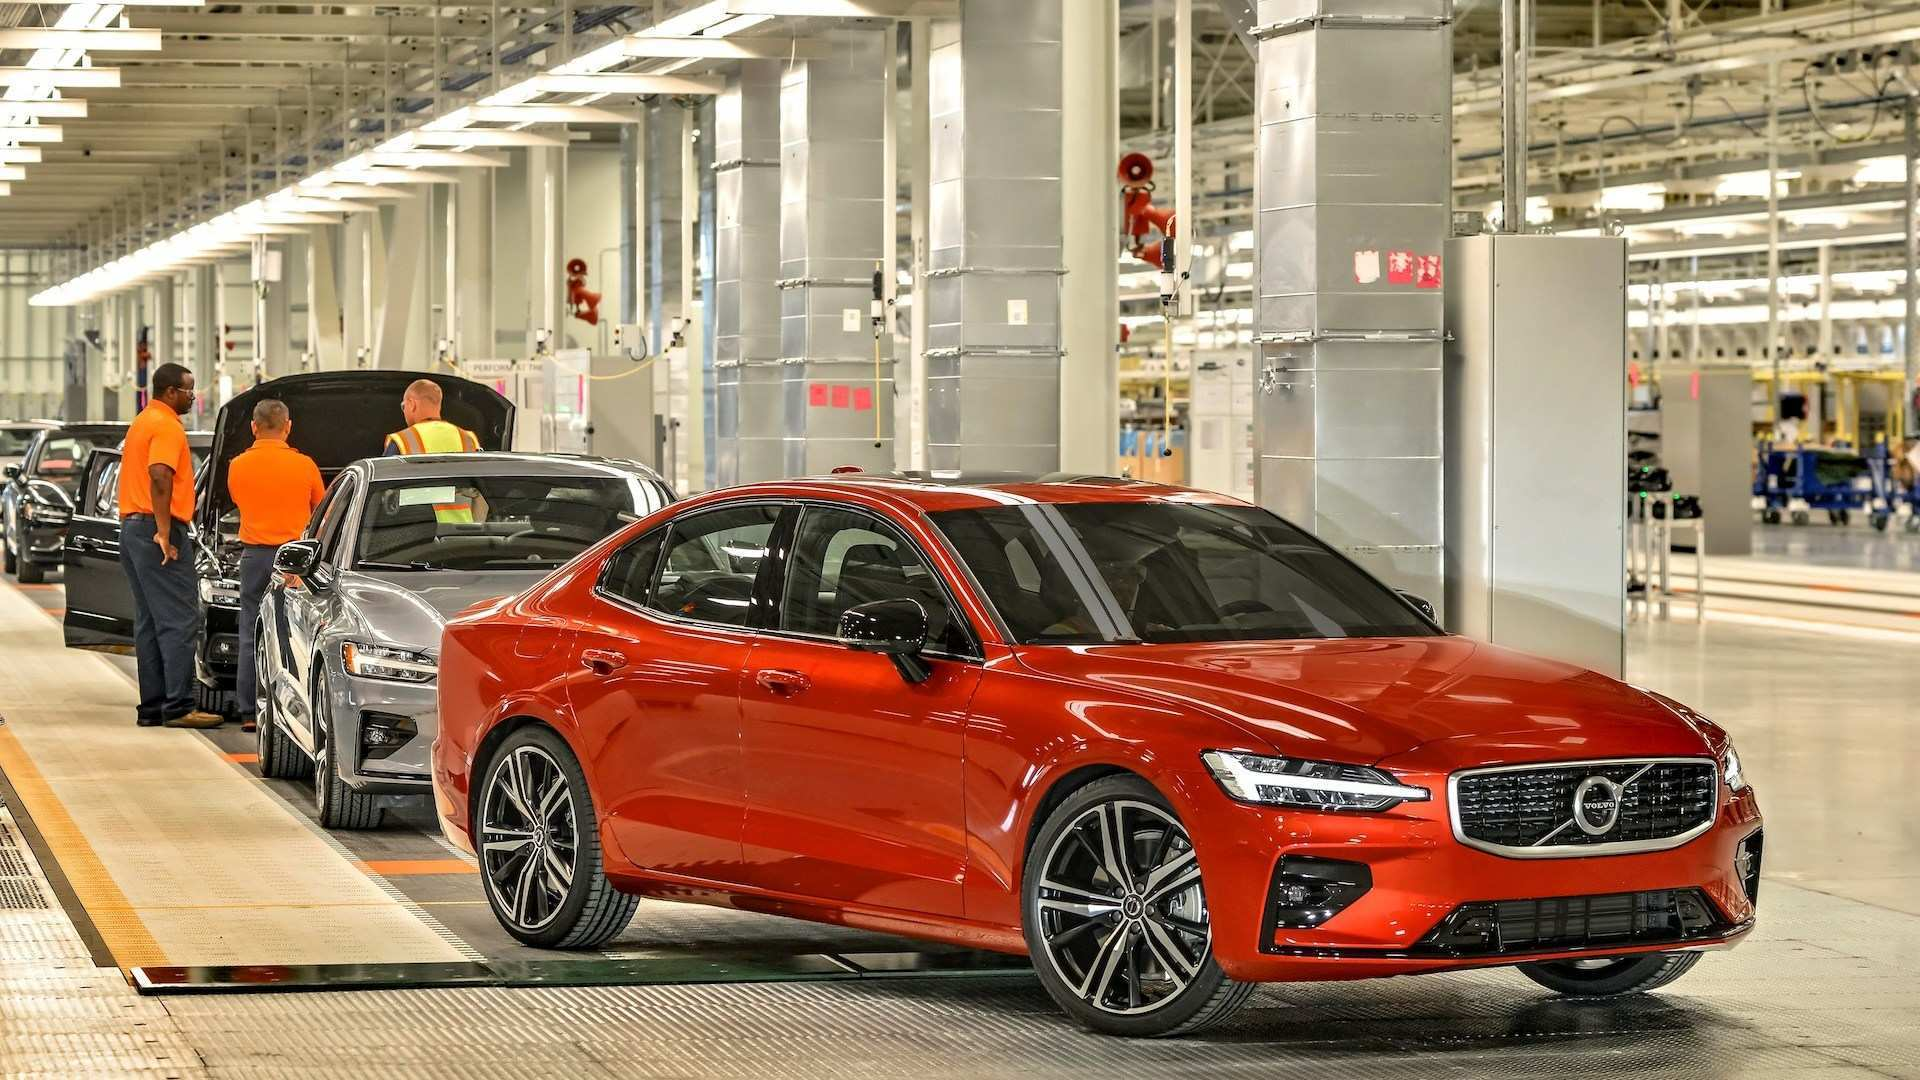 32 Concept of 2019 Volvo S60 Gas Mileage Spy Shoot Specs for 2019 Volvo S60 Gas Mileage Spy Shoot